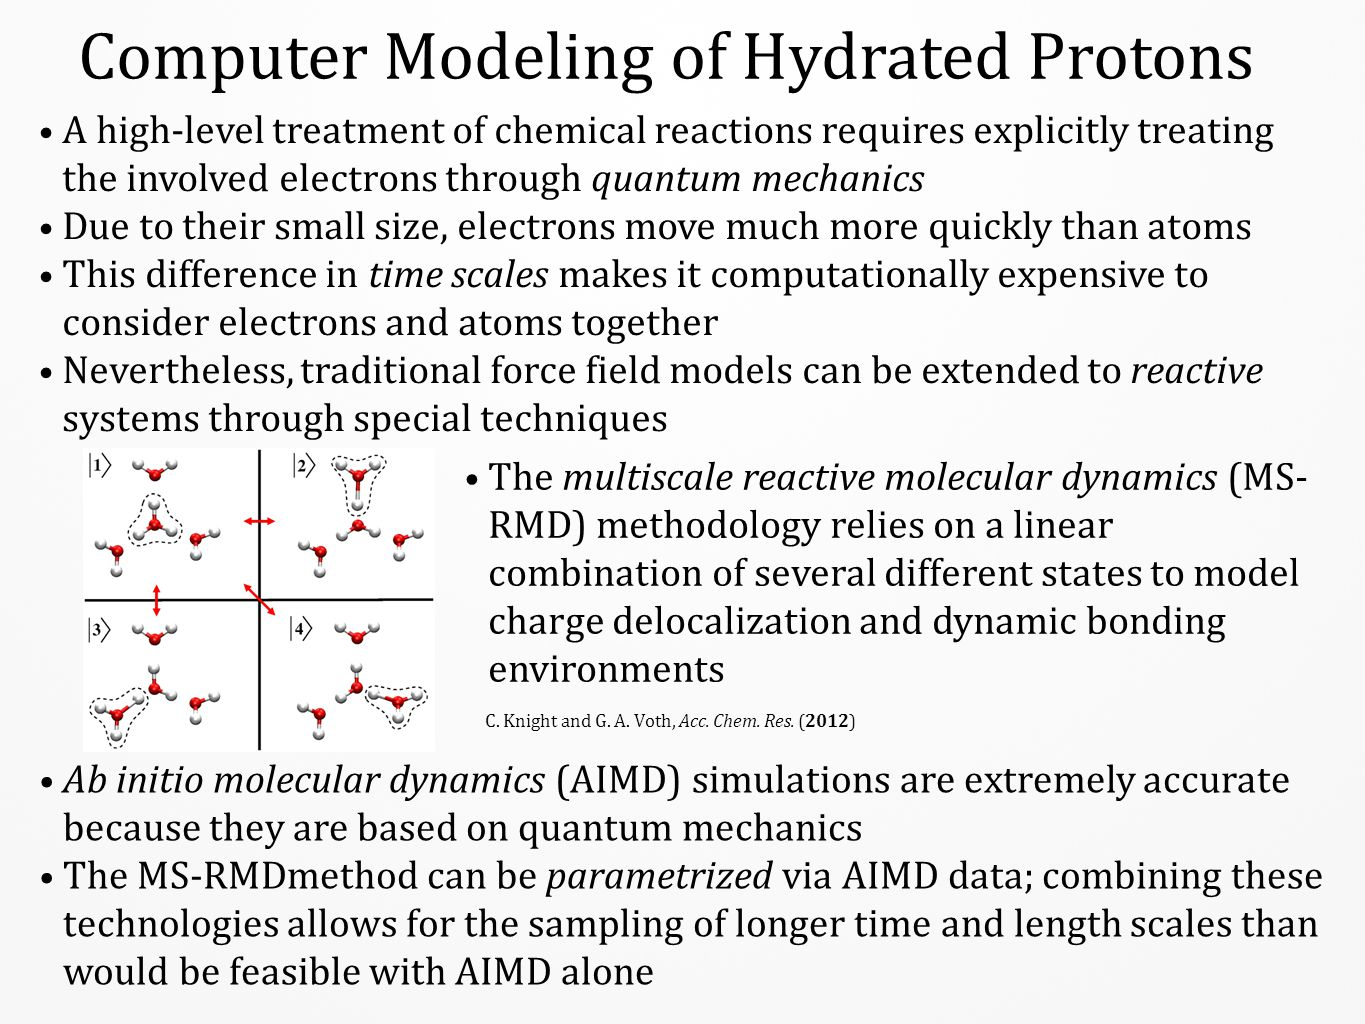 Computer Modeling of Hydrated Protons A high-level treatment of chemical reactions requires explicitly treating the involved electrons through quantum